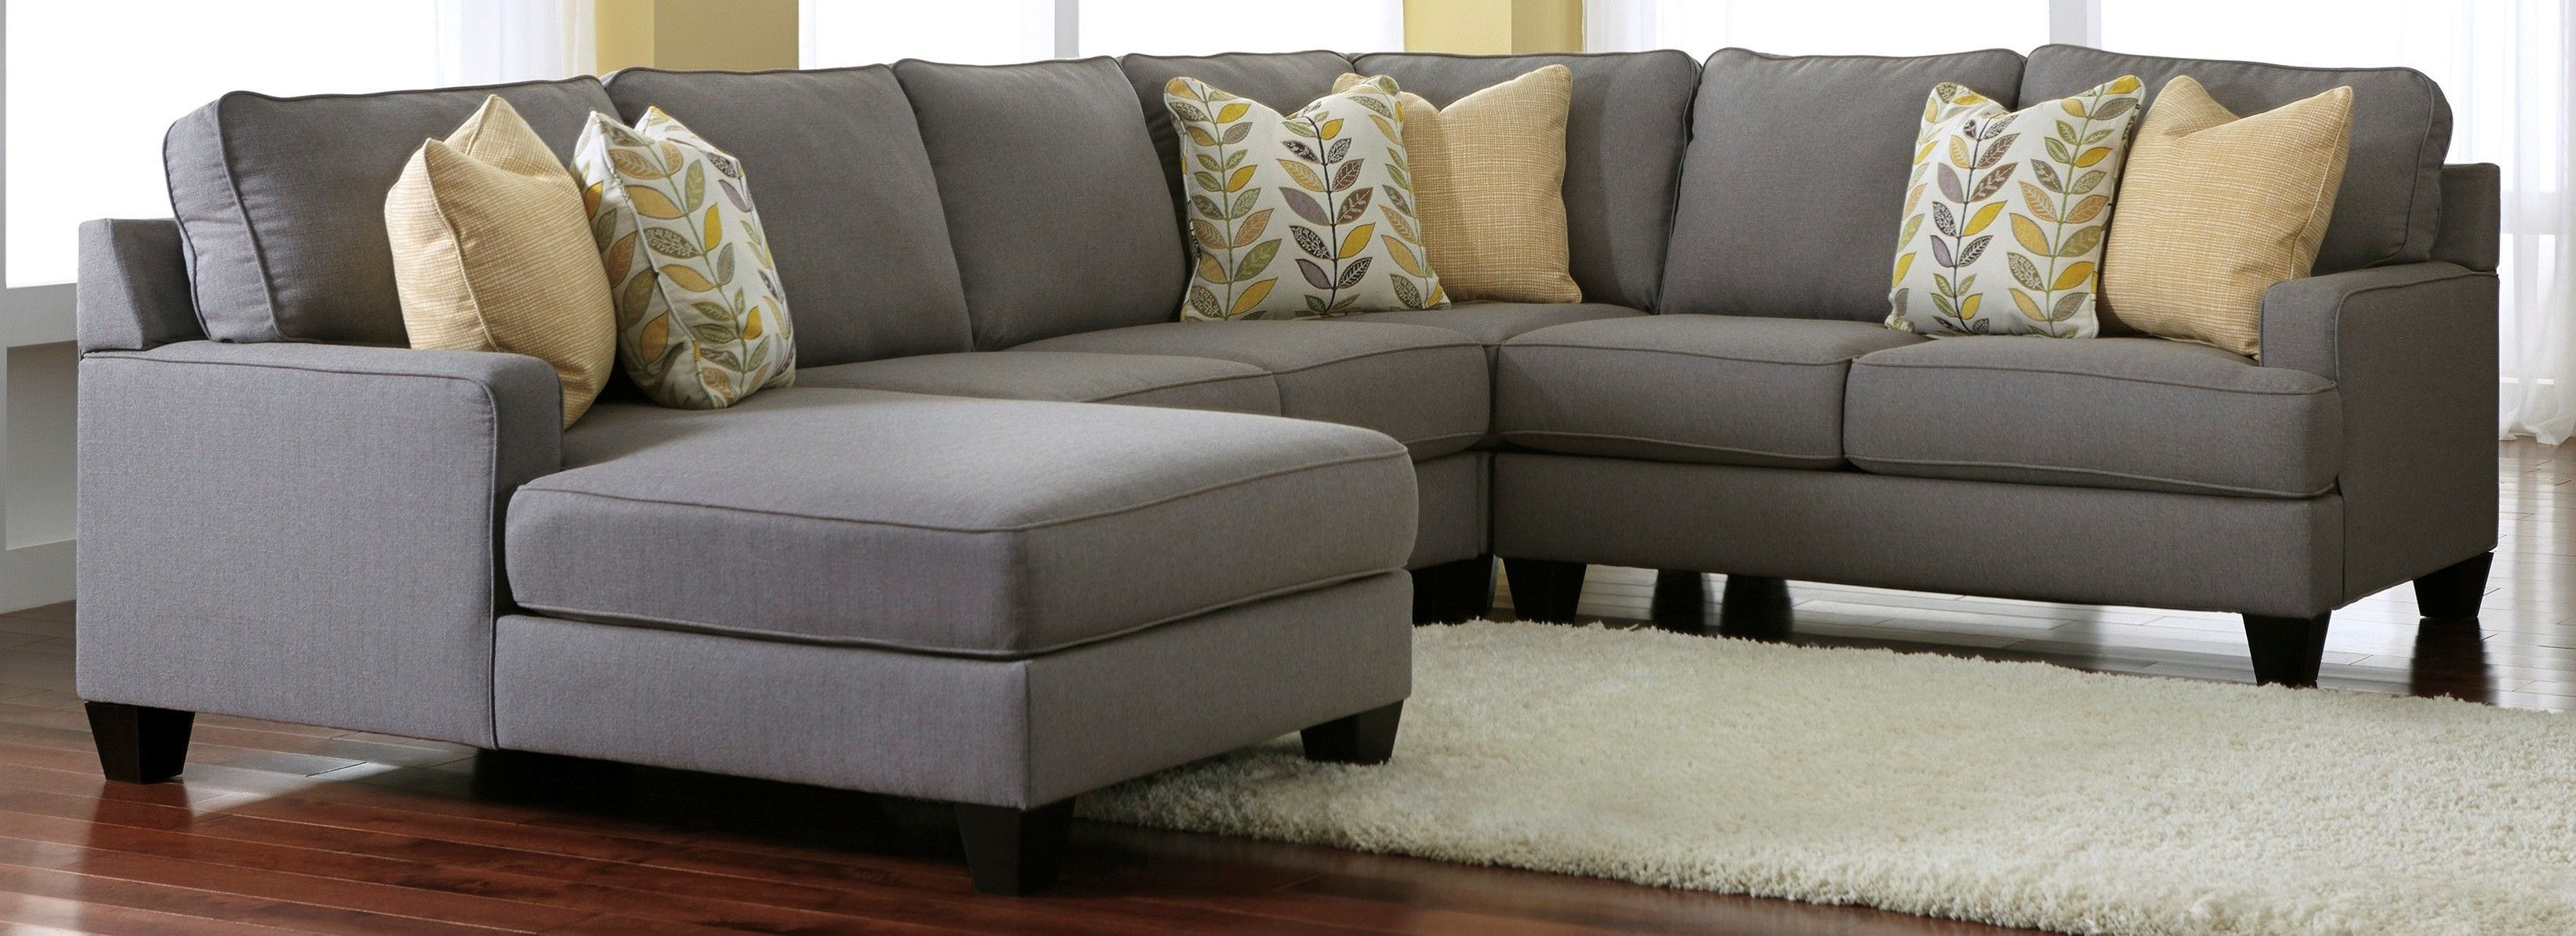 Best Sectional Sofas Ashley Furniture Design Inspirational Decoration